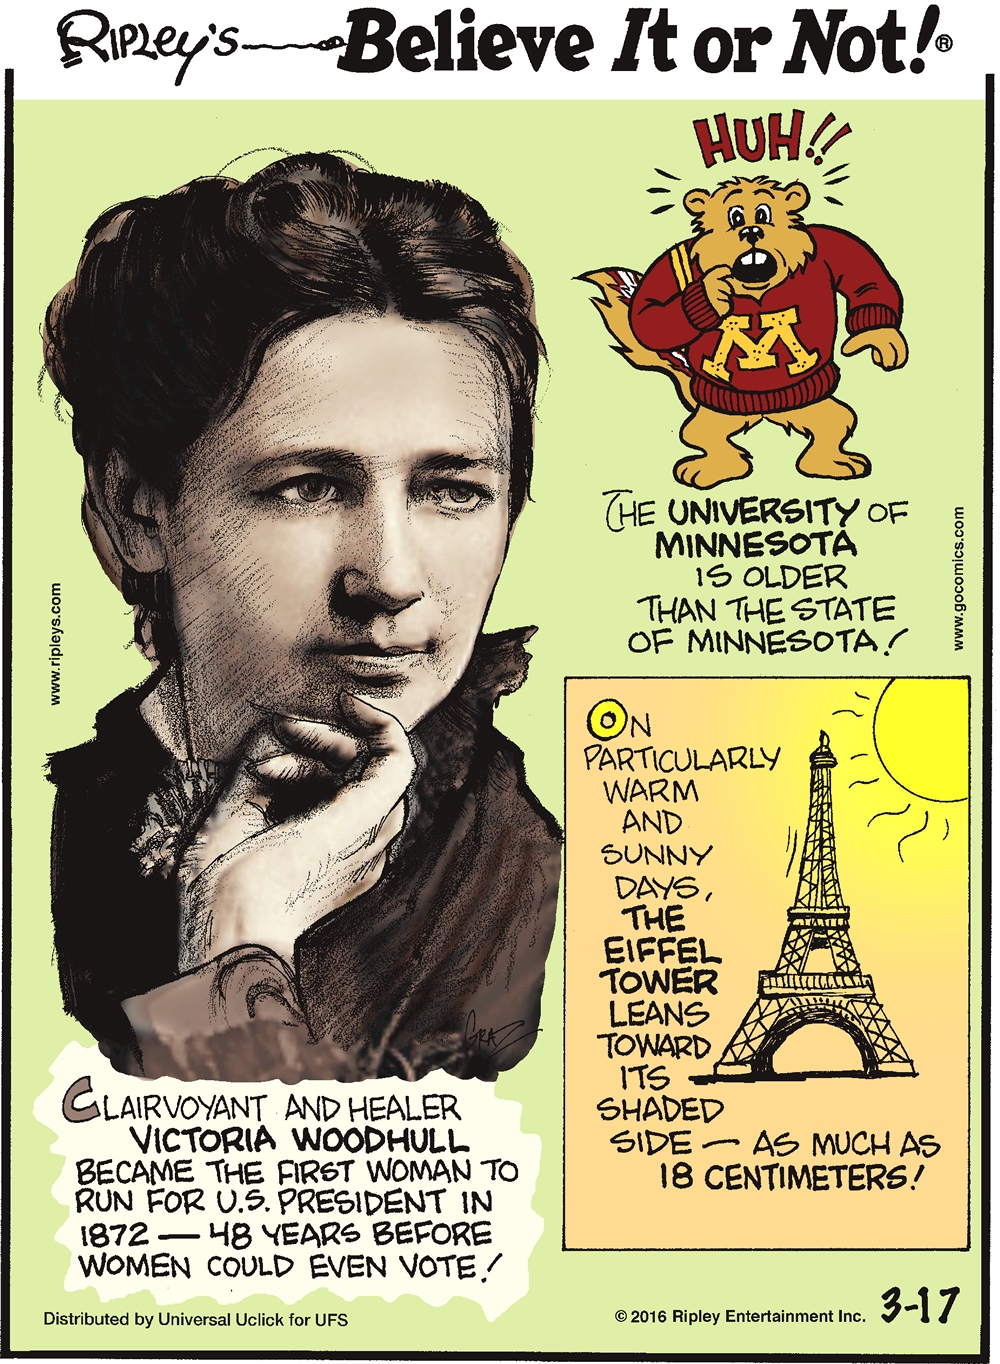 Clairvoyant and healer Victoria Woodhull became the first American woman to run for US president in 1872—48 years before women could even vote! -------------------- The University of Minnesota is older than the state of Minnesota! -------------------- On particularly warm and sunny days, the Eiffel tower leans toward its shaded side—as much as 18 centimeters!